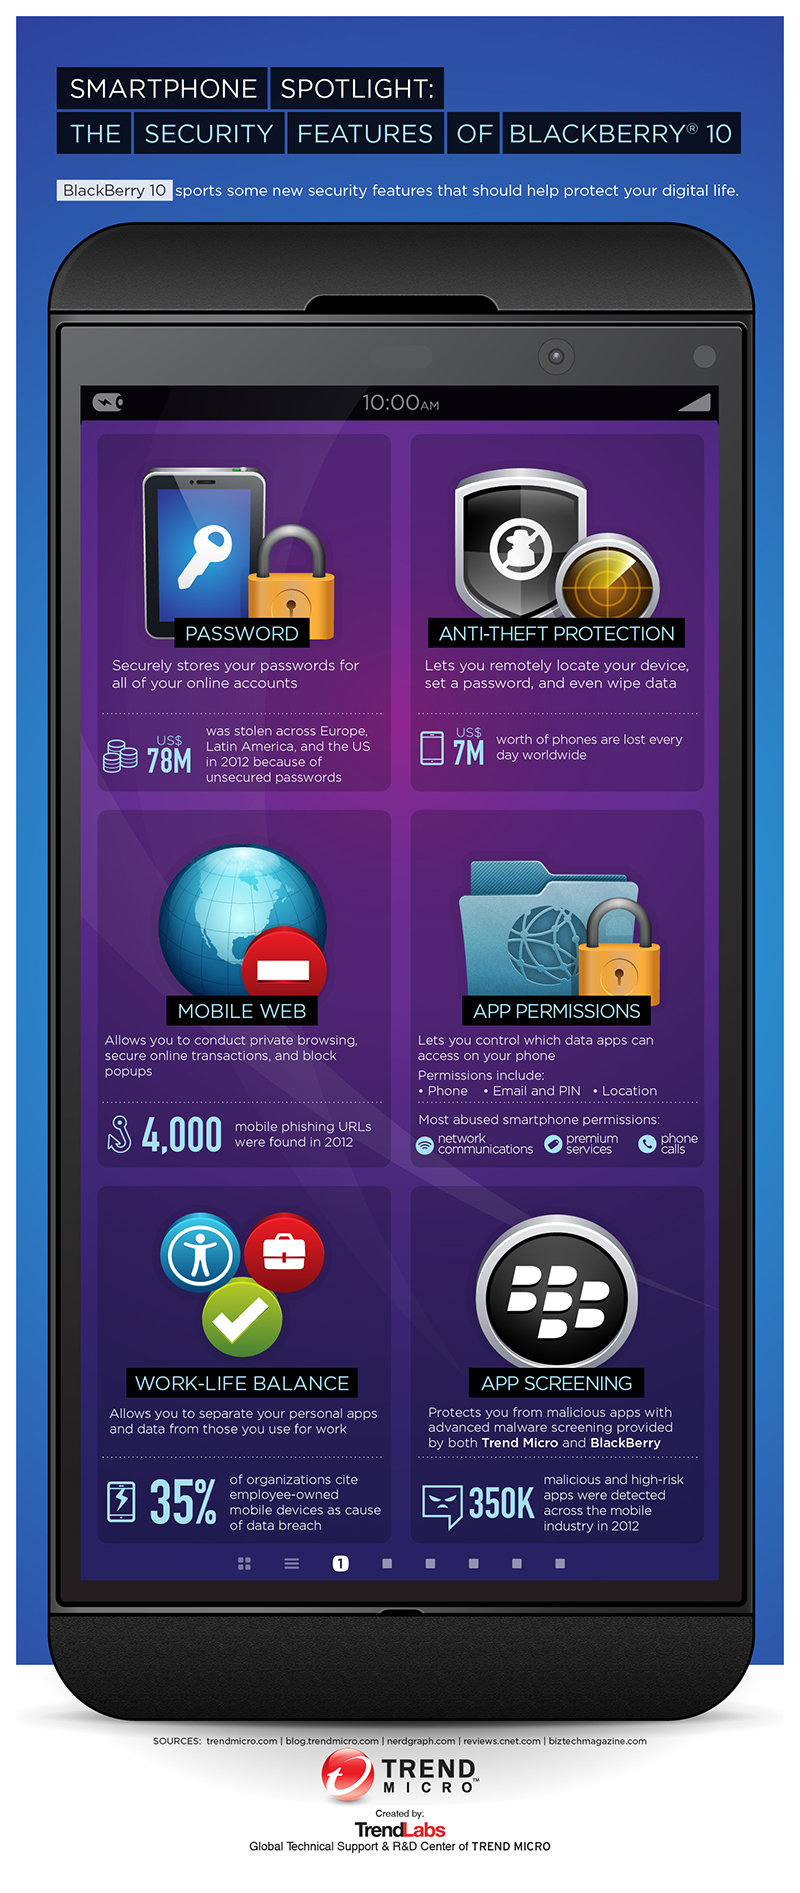 The security features of #blackberry 10 #infographic